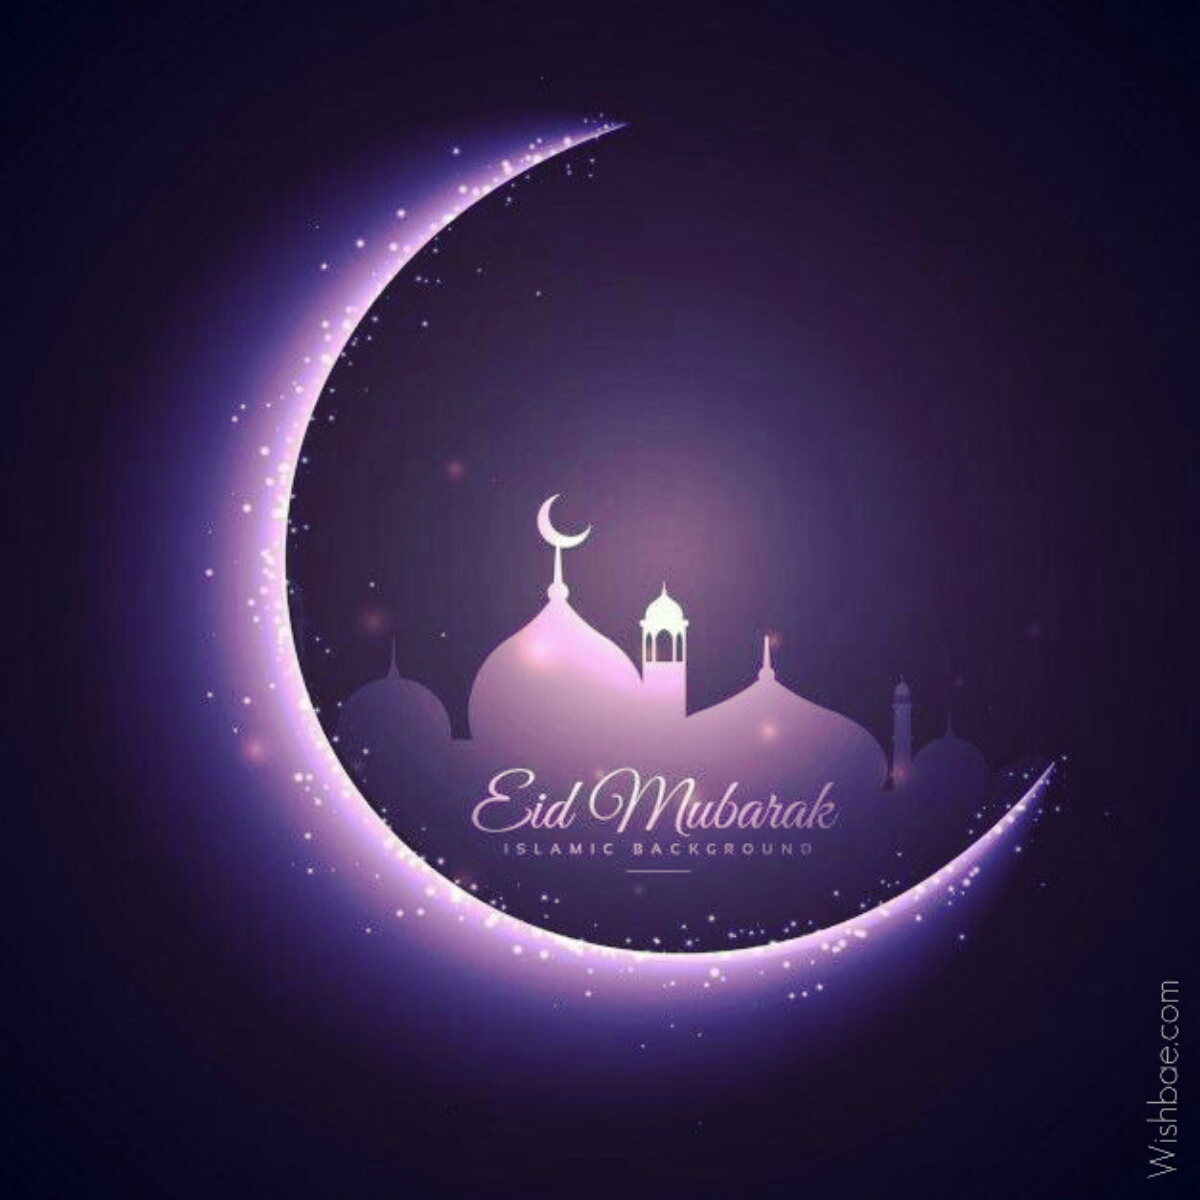 Eid mubarak wishes happy eid al fitr quotes messages images celebrate this eid with open hearts hope you like this collection of eid mubarak images and eid wishes keep coming to this place for more awesome updates m4hsunfo